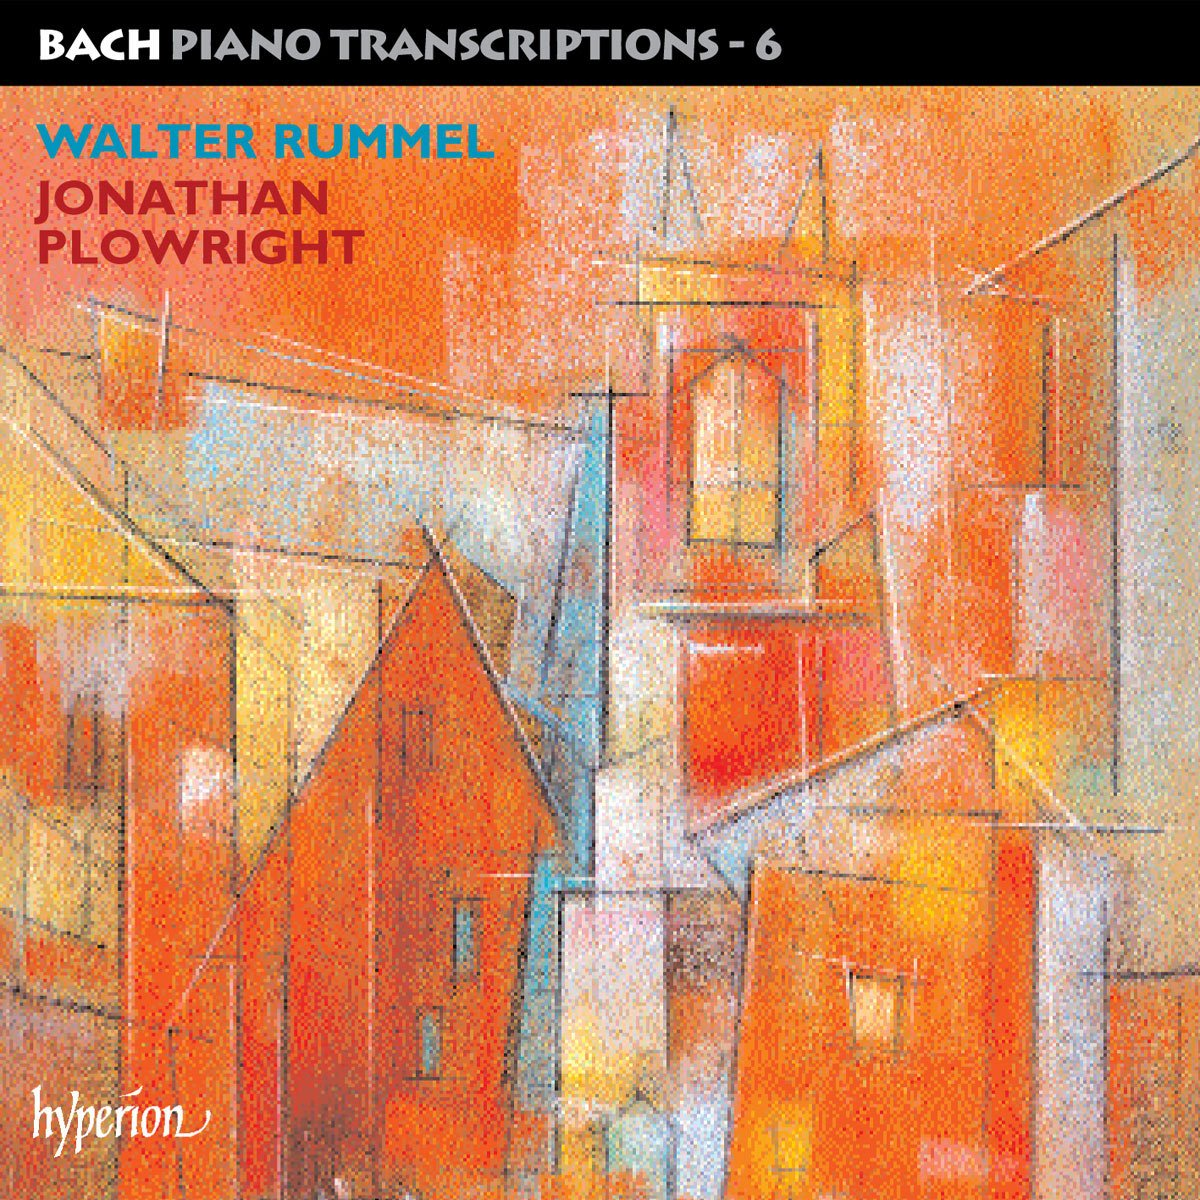 Bach Piano Transcriptions, Vol. 6: Walter Rummel by HYPERION